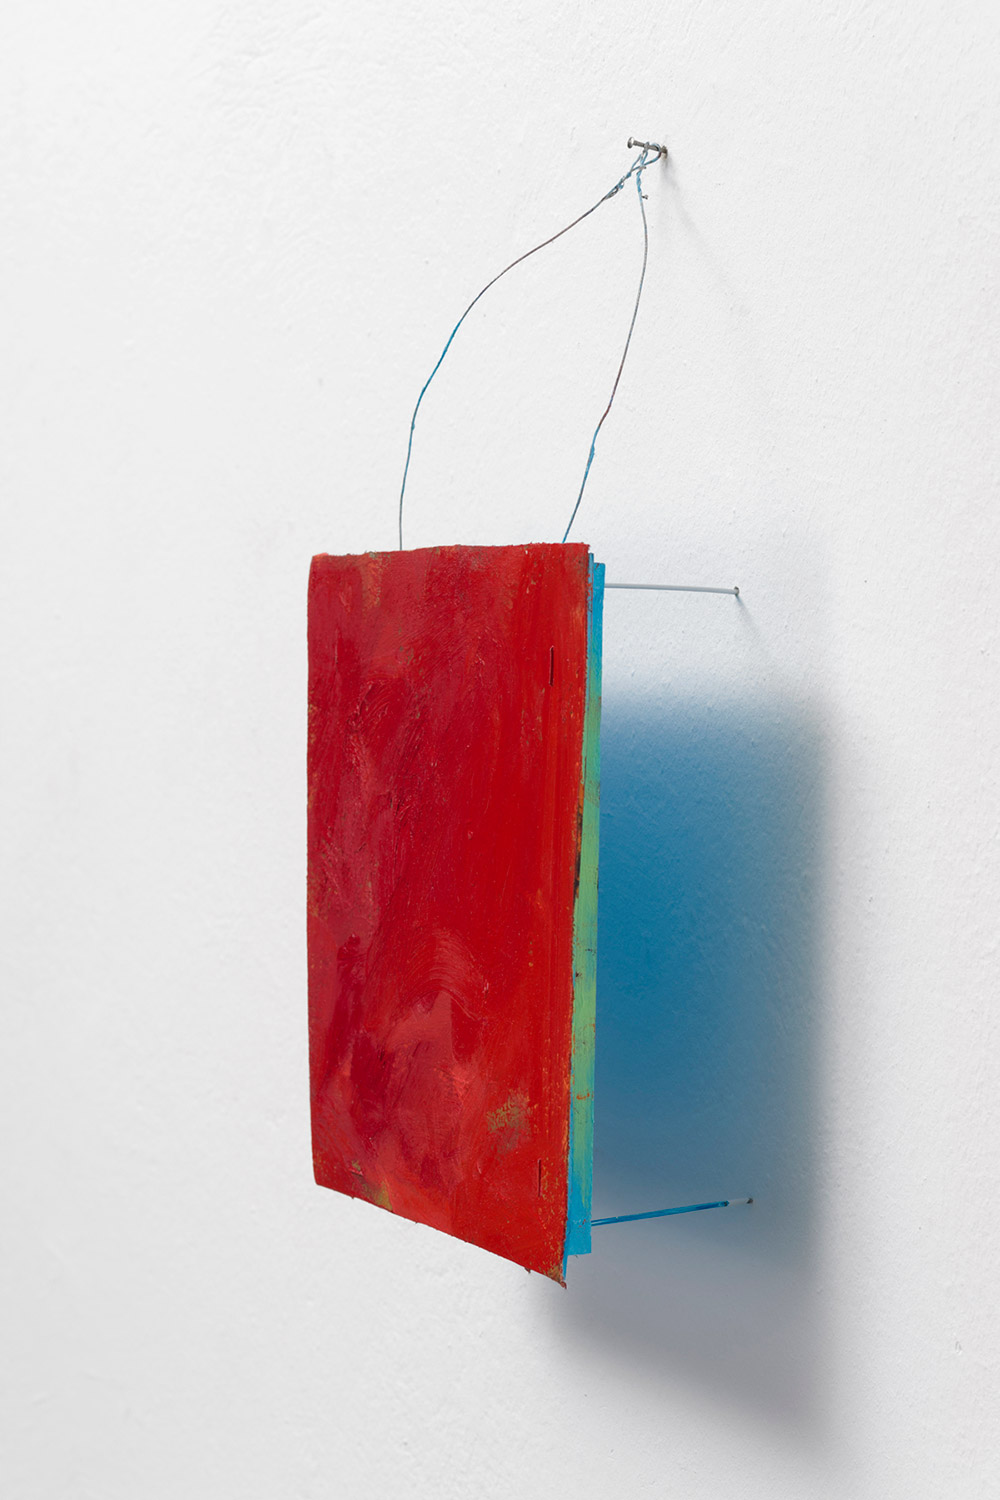 Possibly Now X   Oil on canvas, wood, wire 15 × 10.5 × 4 inches  38 × 27 × 10 cm 2014